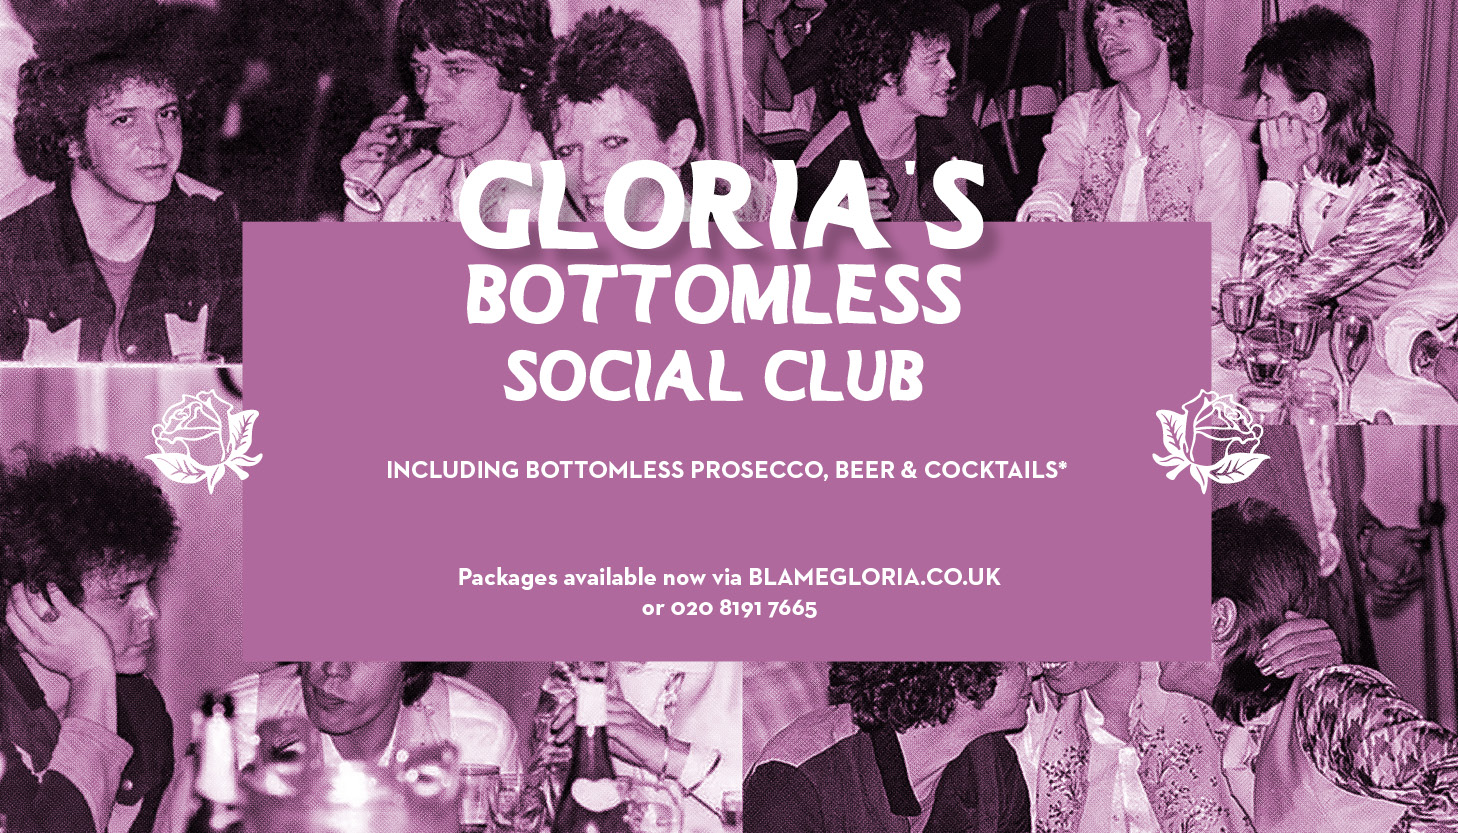 Blame Gloria: Social Club,Covent Garden